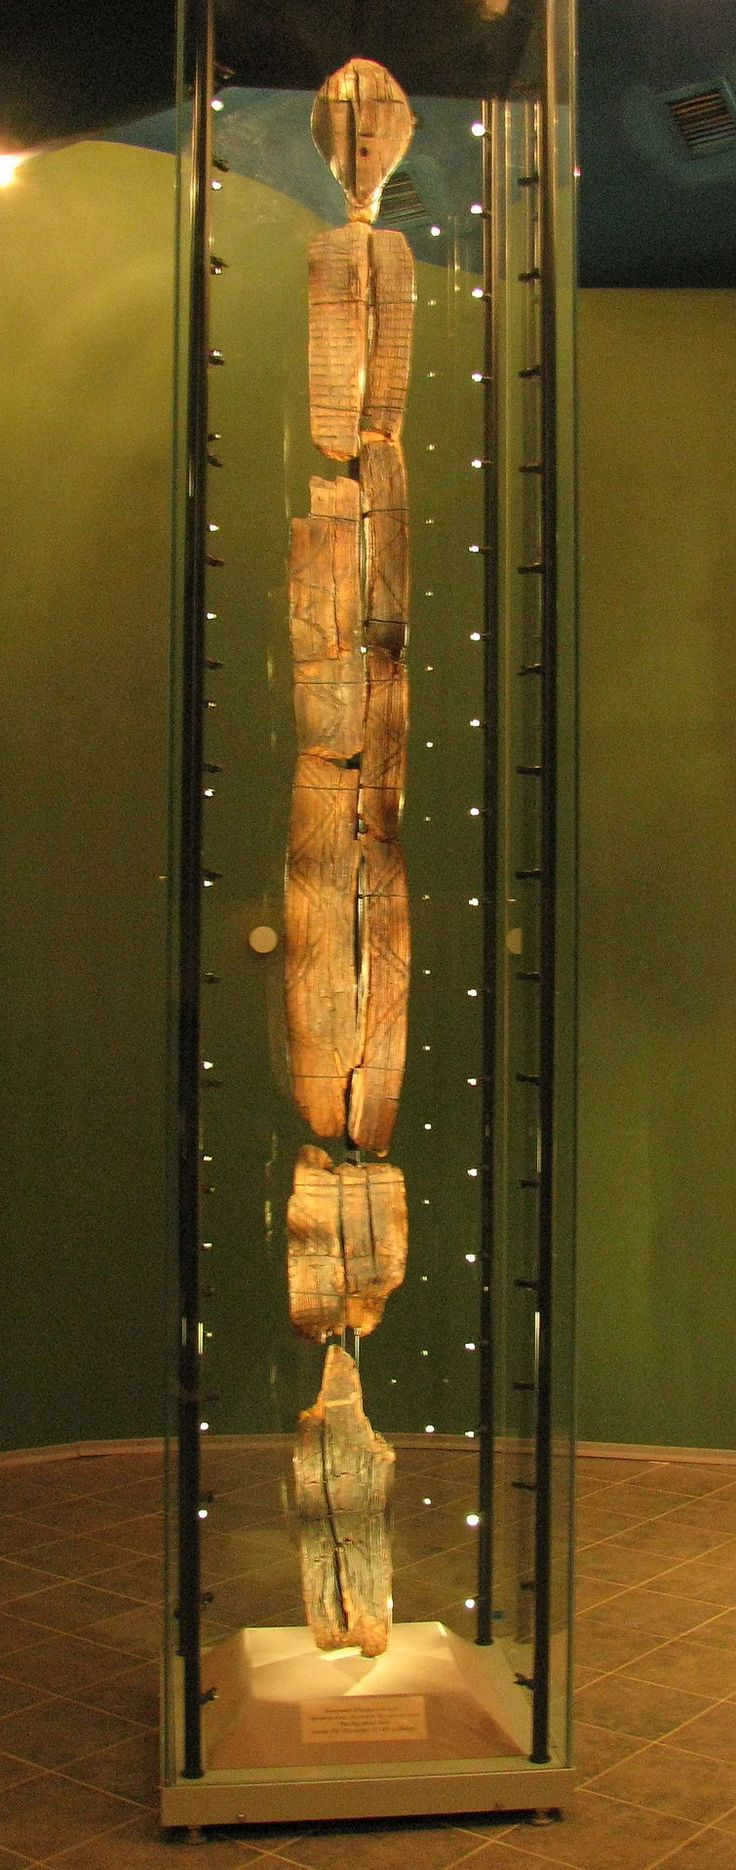 """The Shigir Idol is the most ancient wooden sculpture in the world, made during the Mesolithic period, around 7,500 BCE. It is displayed in the """"Historic Exhibition"""" Museum in Yekaterinburg, Russia. The radiocarbon dating carried out confirmed by the Institute of Geology of the Academy of Science of Russia in Moscow, gives an age of 9,500 years. It is the most ancient known wooden sculpture in the world."""